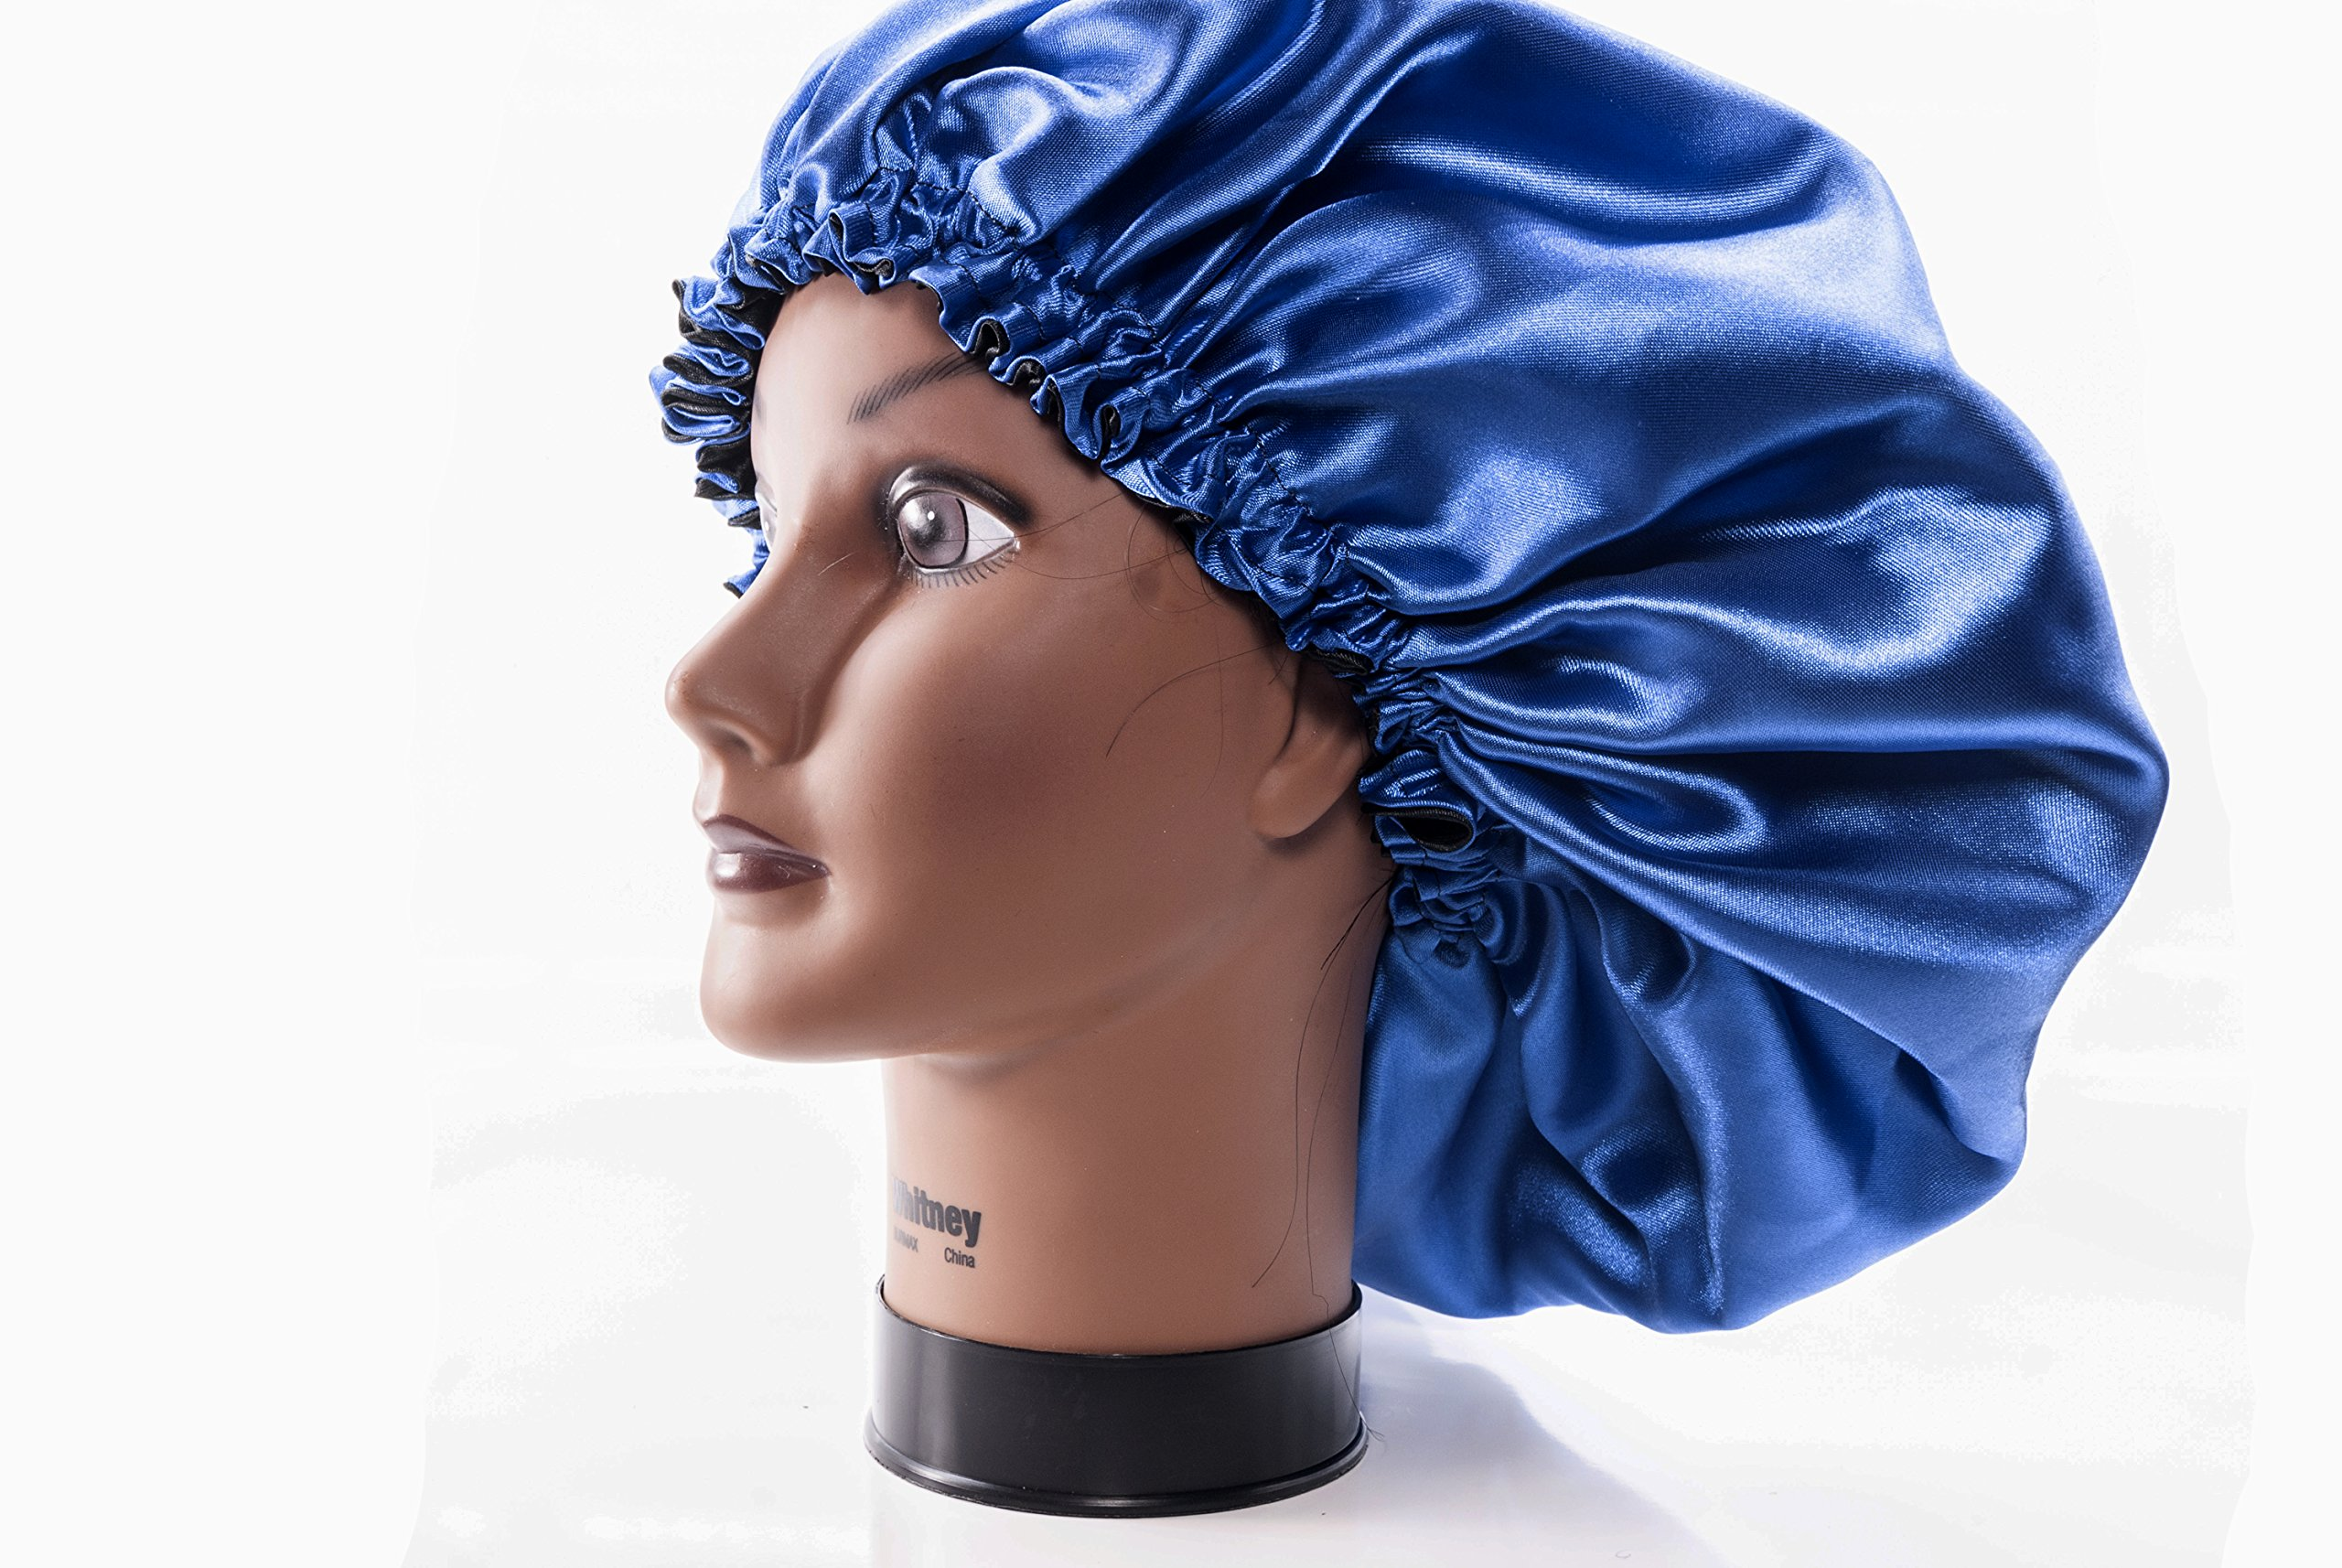 (X-Large, ROYAL BLUE) New 24'' Handmade Fully Reversible Luxuries Pure Satin Hair Bonnet Safe For All Hair Types - Most Beneficial Hair care Product Available- Royal Sensations Bonnet by Royal Sensations Satin Bonnet